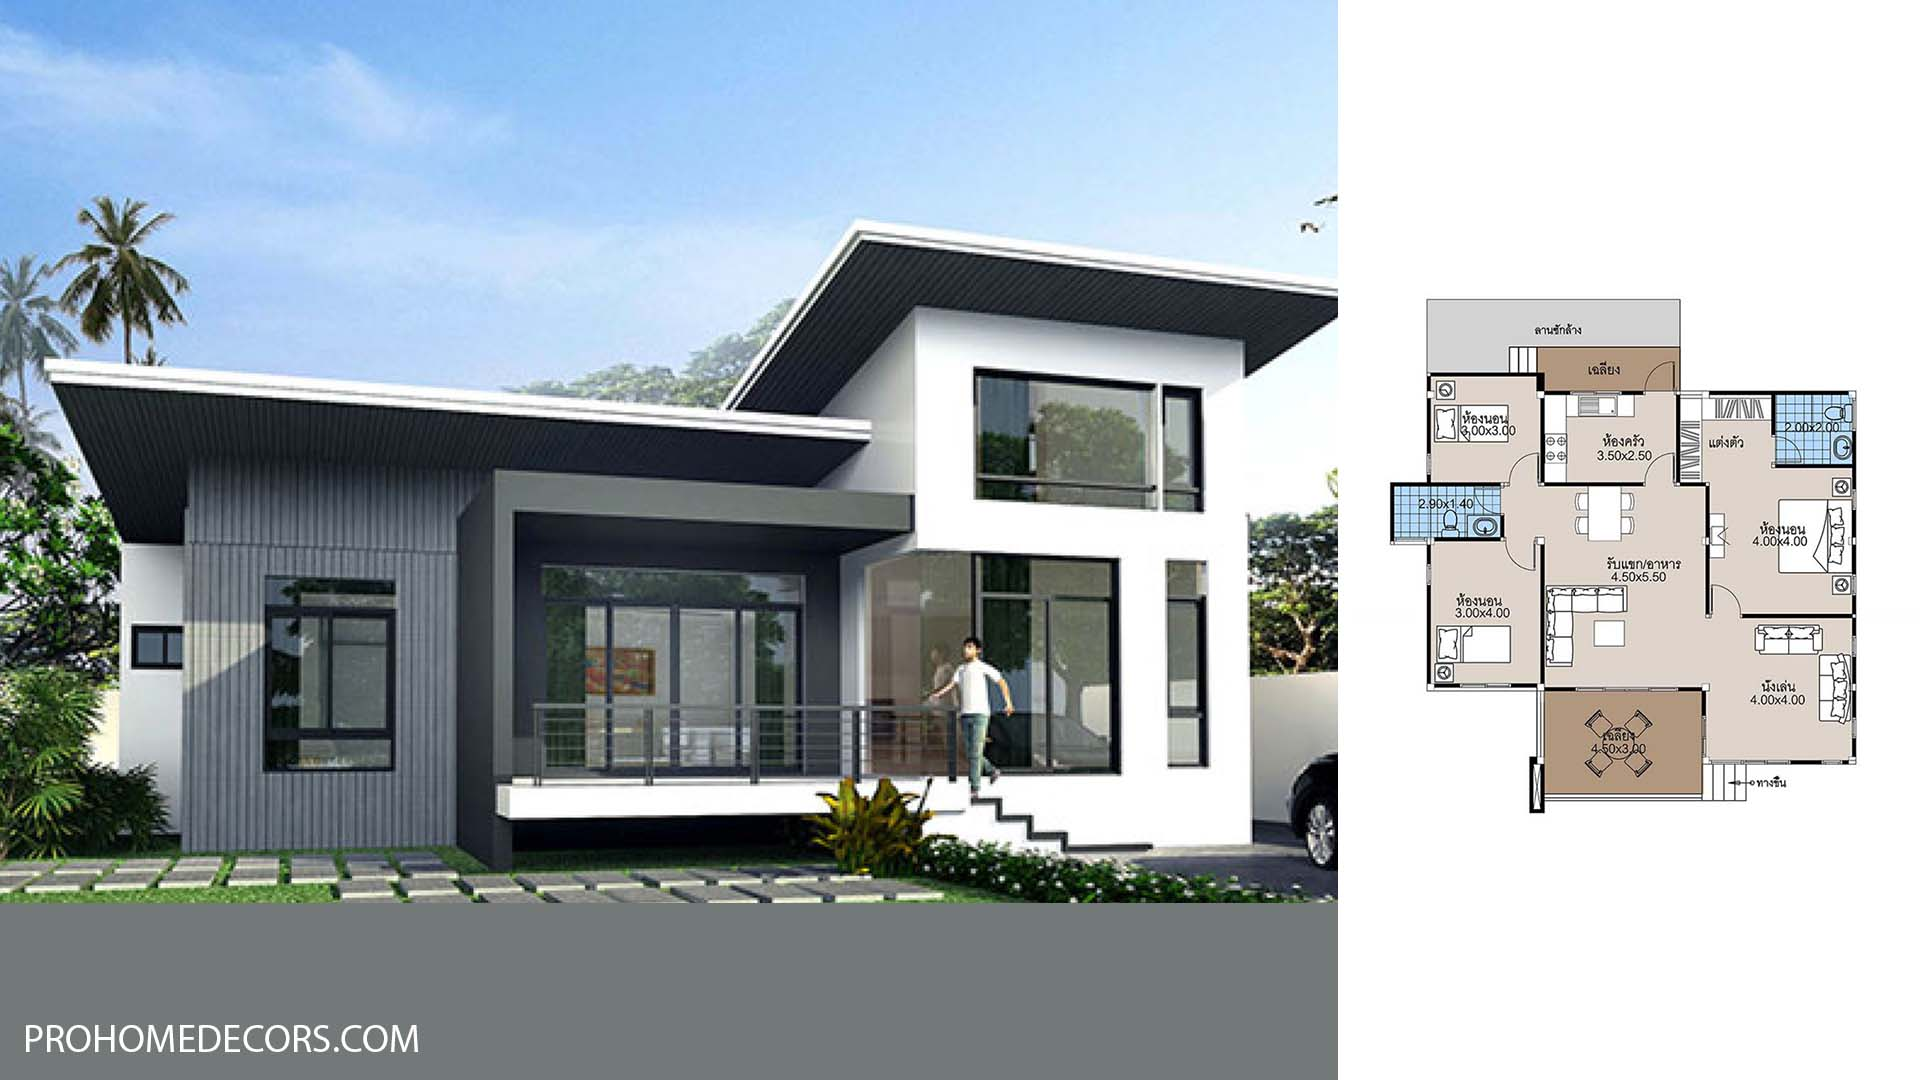 House Plans 12.5×12 with 3 Bedrooms